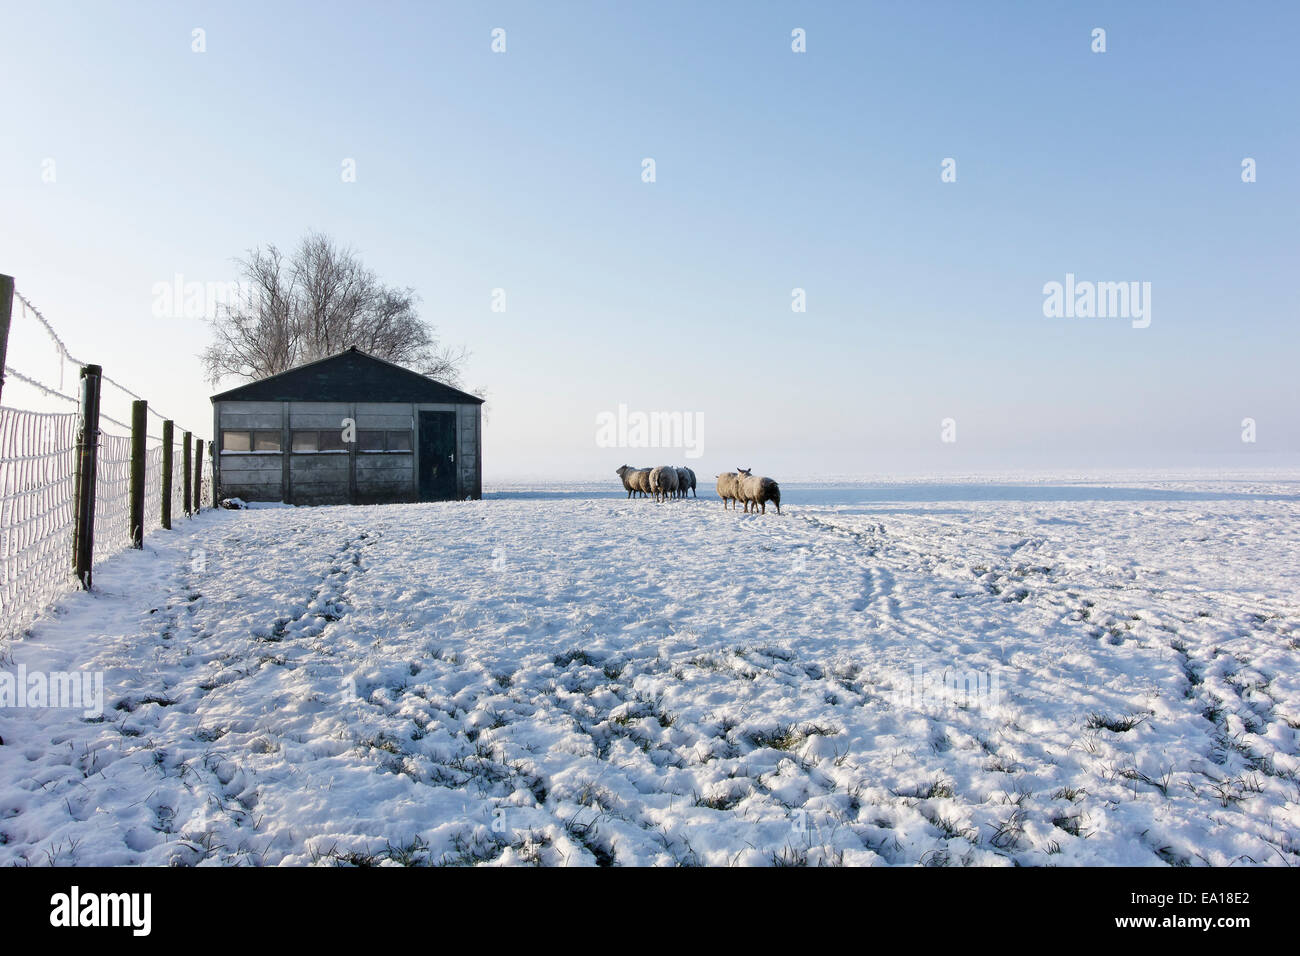 A Cold Winter Morning In Netherlands Stock Photo 75016650 Alamy